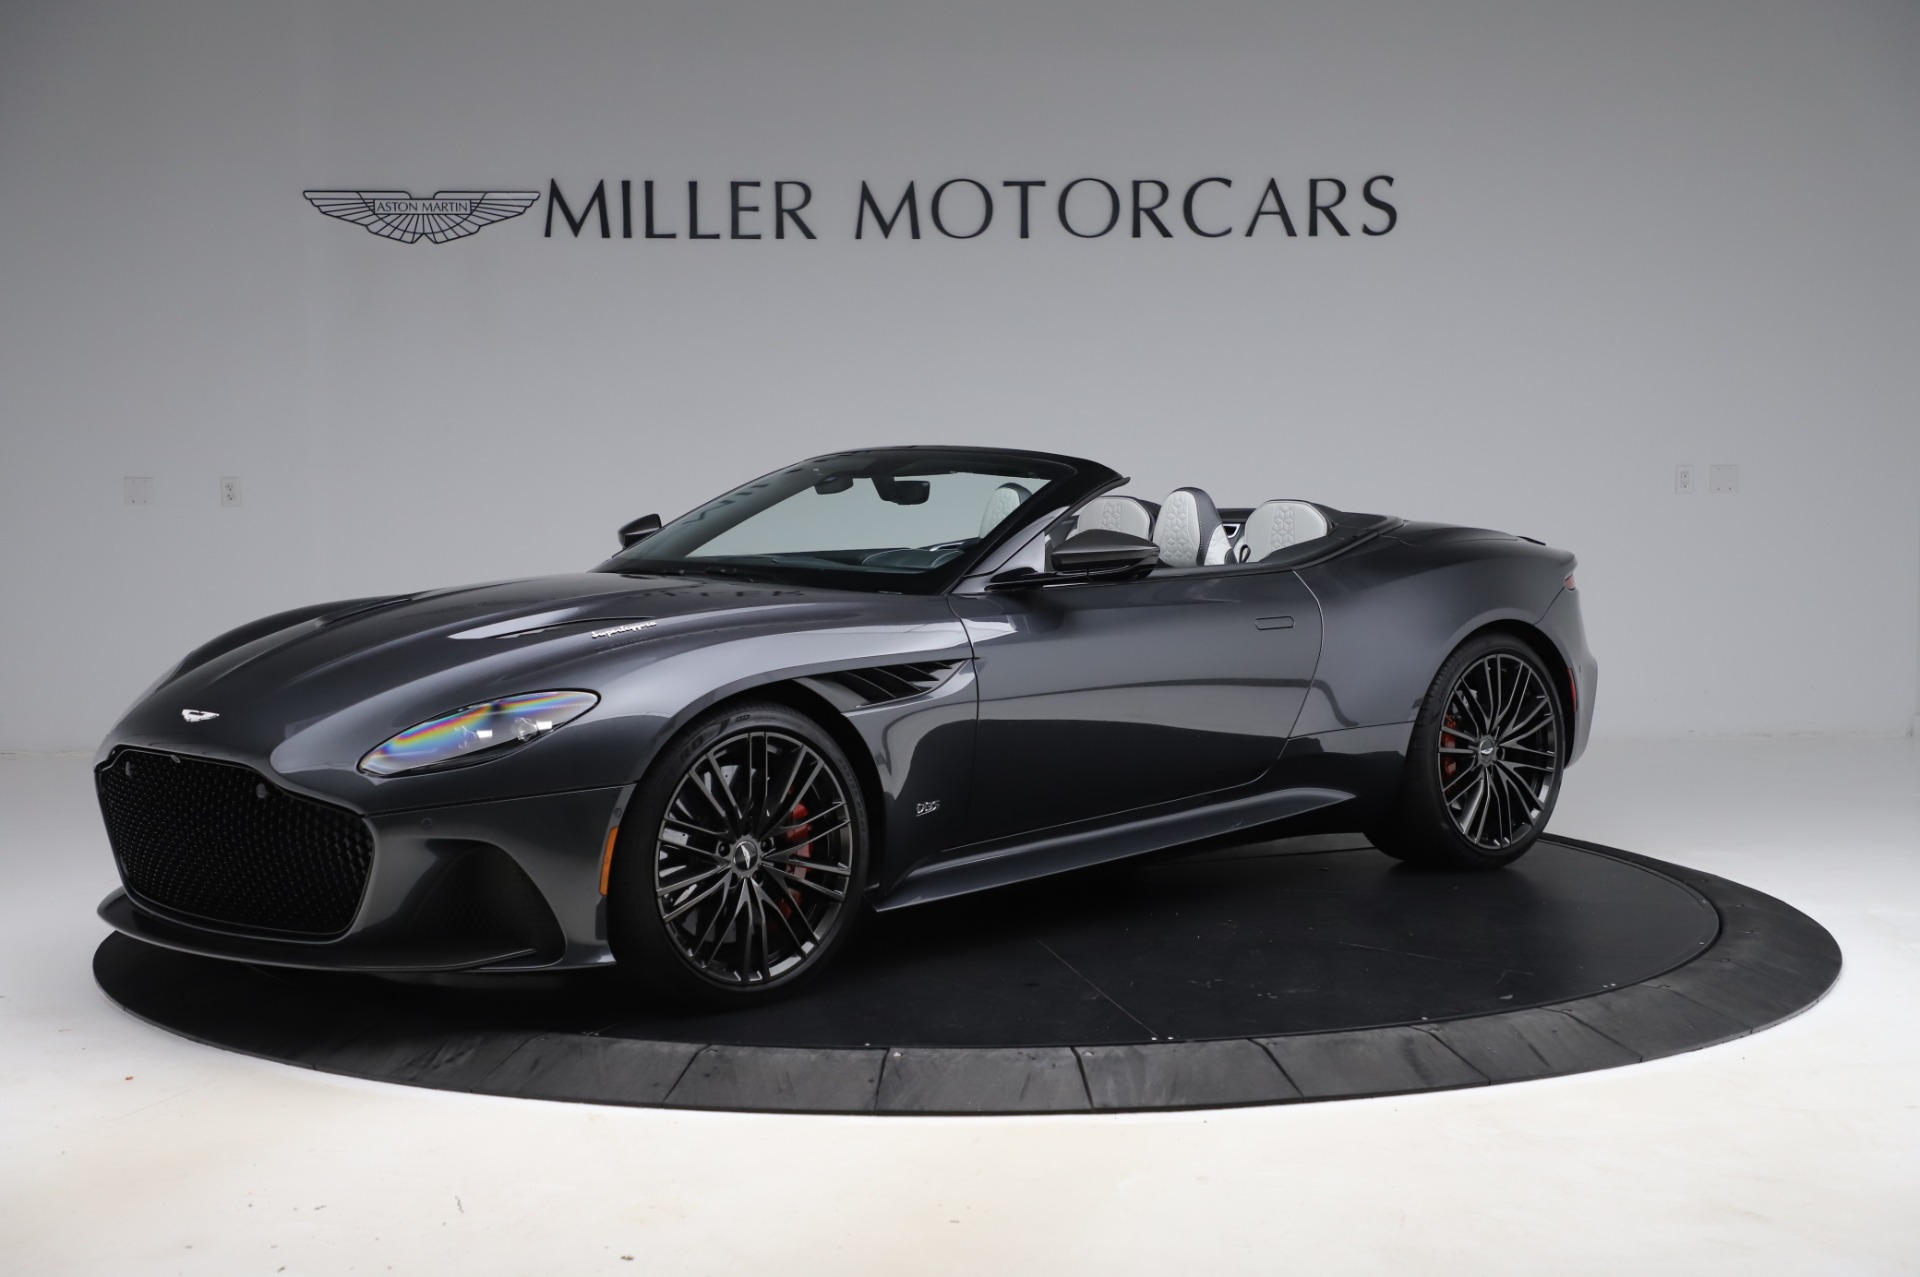 Used 2020 Aston Martin DBS Superleggera for sale $329,900 at Alfa Romeo of Greenwich in Greenwich CT 06830 1